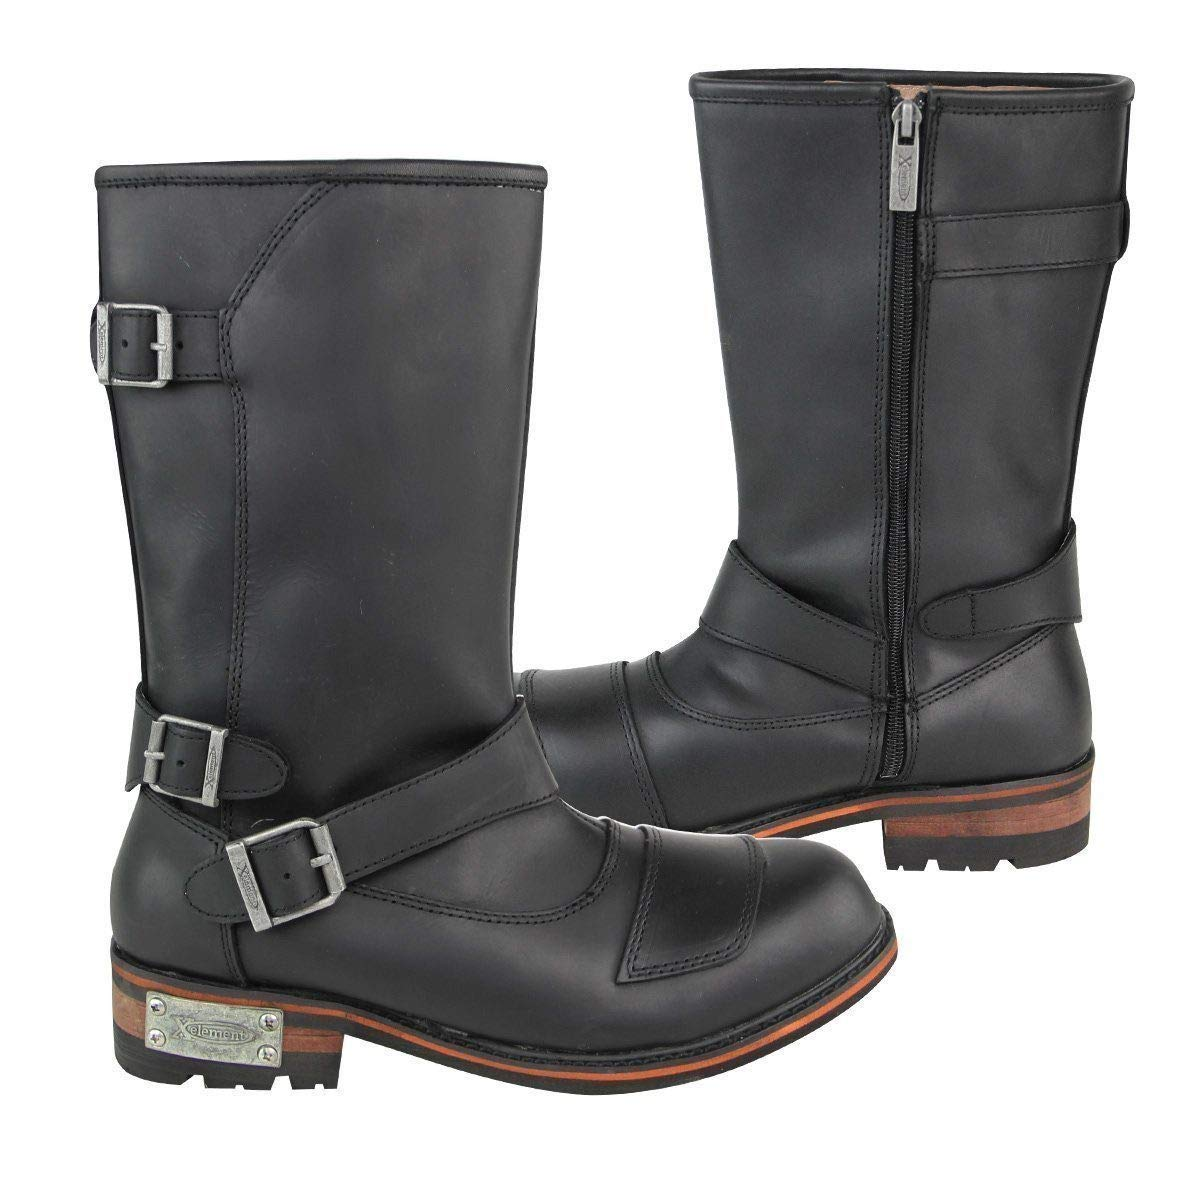 9 Xelement LU9605 Mens Black Three Buckle with Shifter Pad Motorcycle Engineer Boots